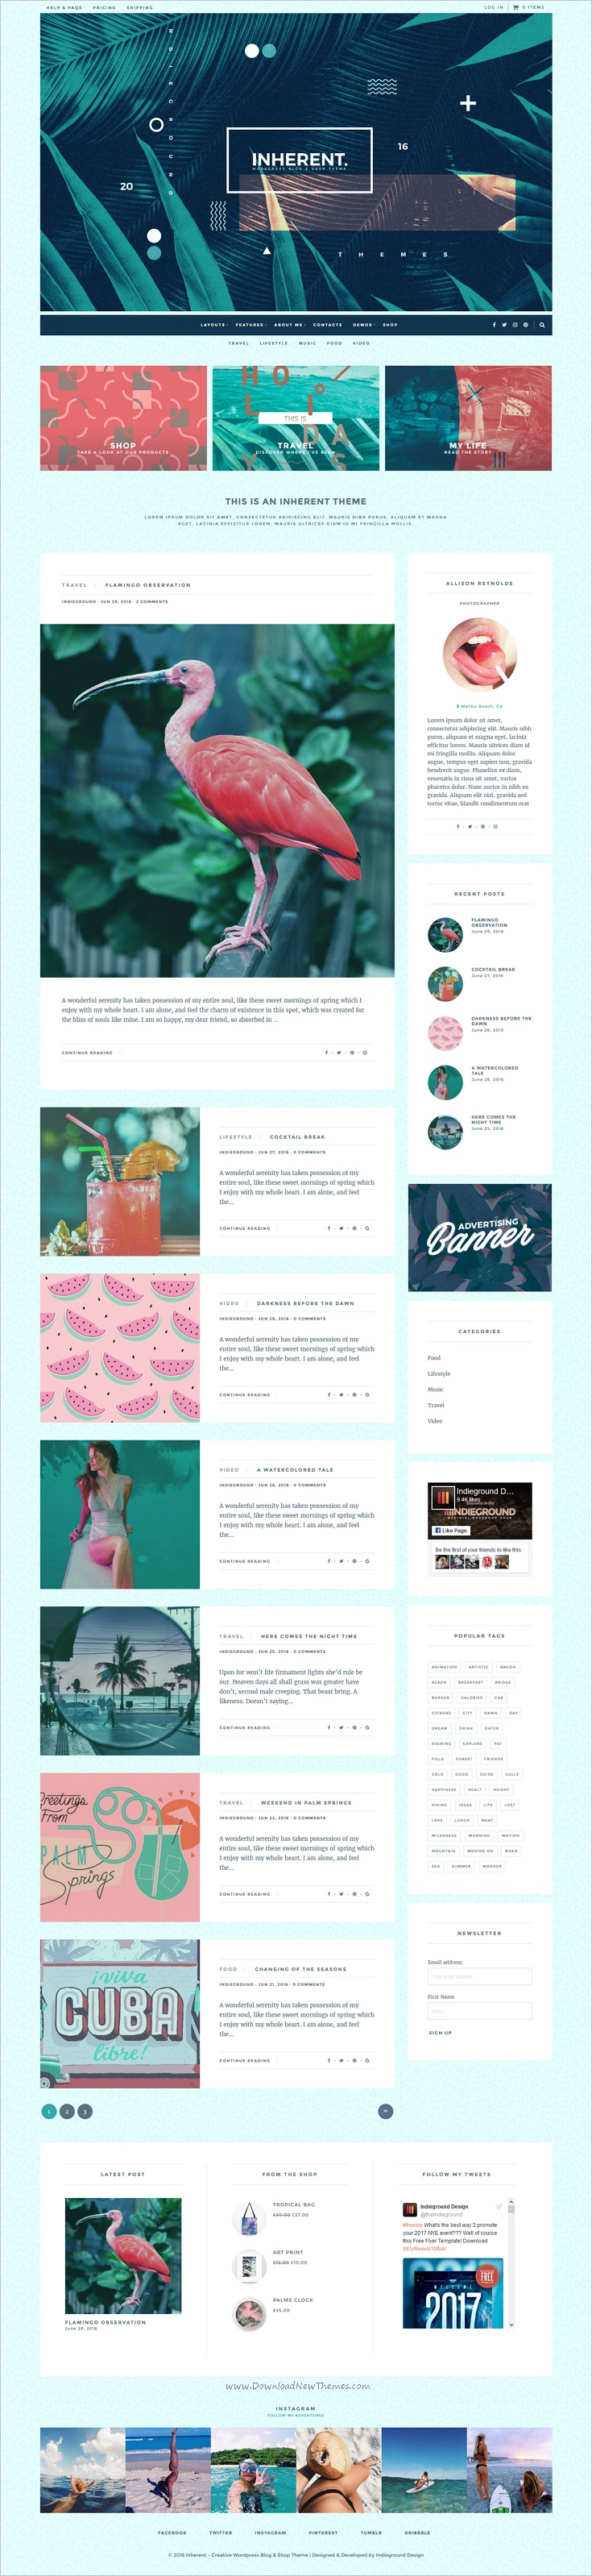 Inherent is a versatile and contemporary 3in1 #WordPress template for #webdev creative #blogger and shop websites download now➩ https://themeforest.net/item/inherent-creative-wordpress-blog-shop-theme/17781267?ref=Datasata